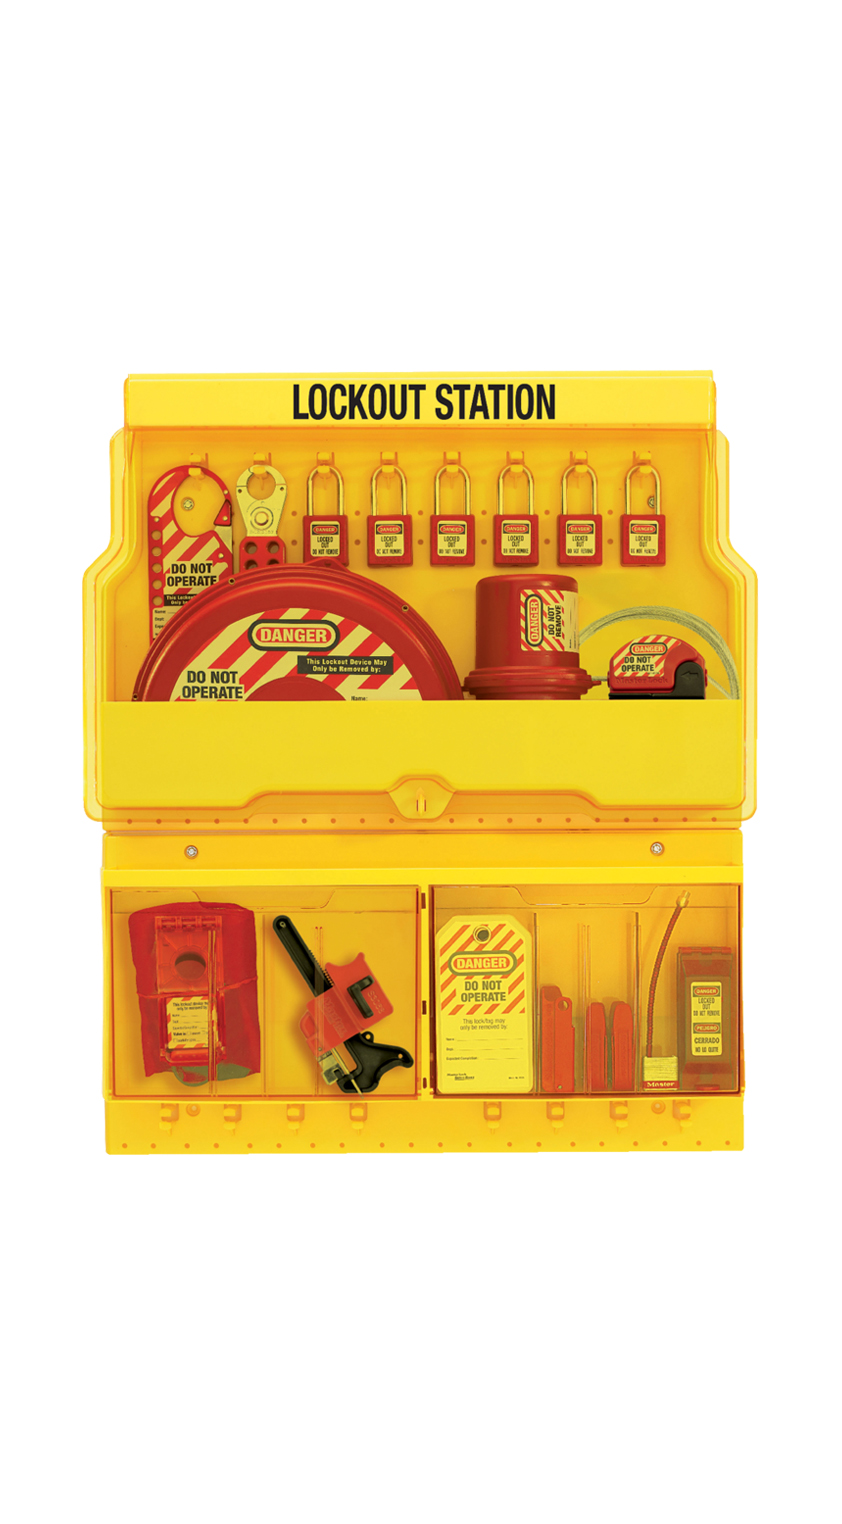 lockout-tagout station